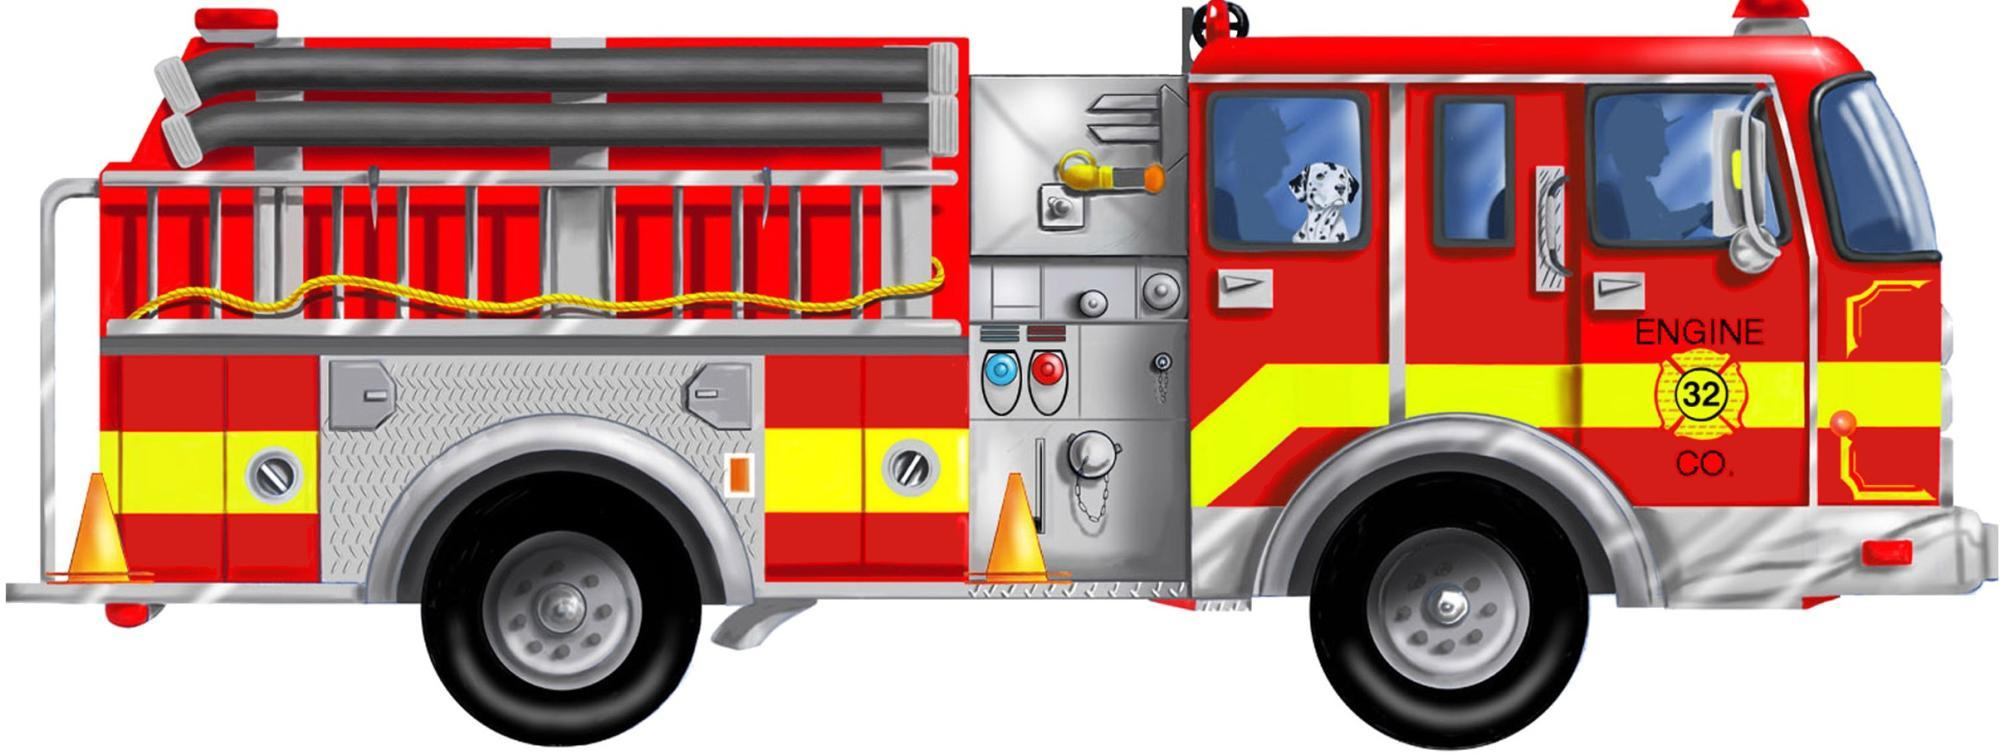 the fire engine - photo #39